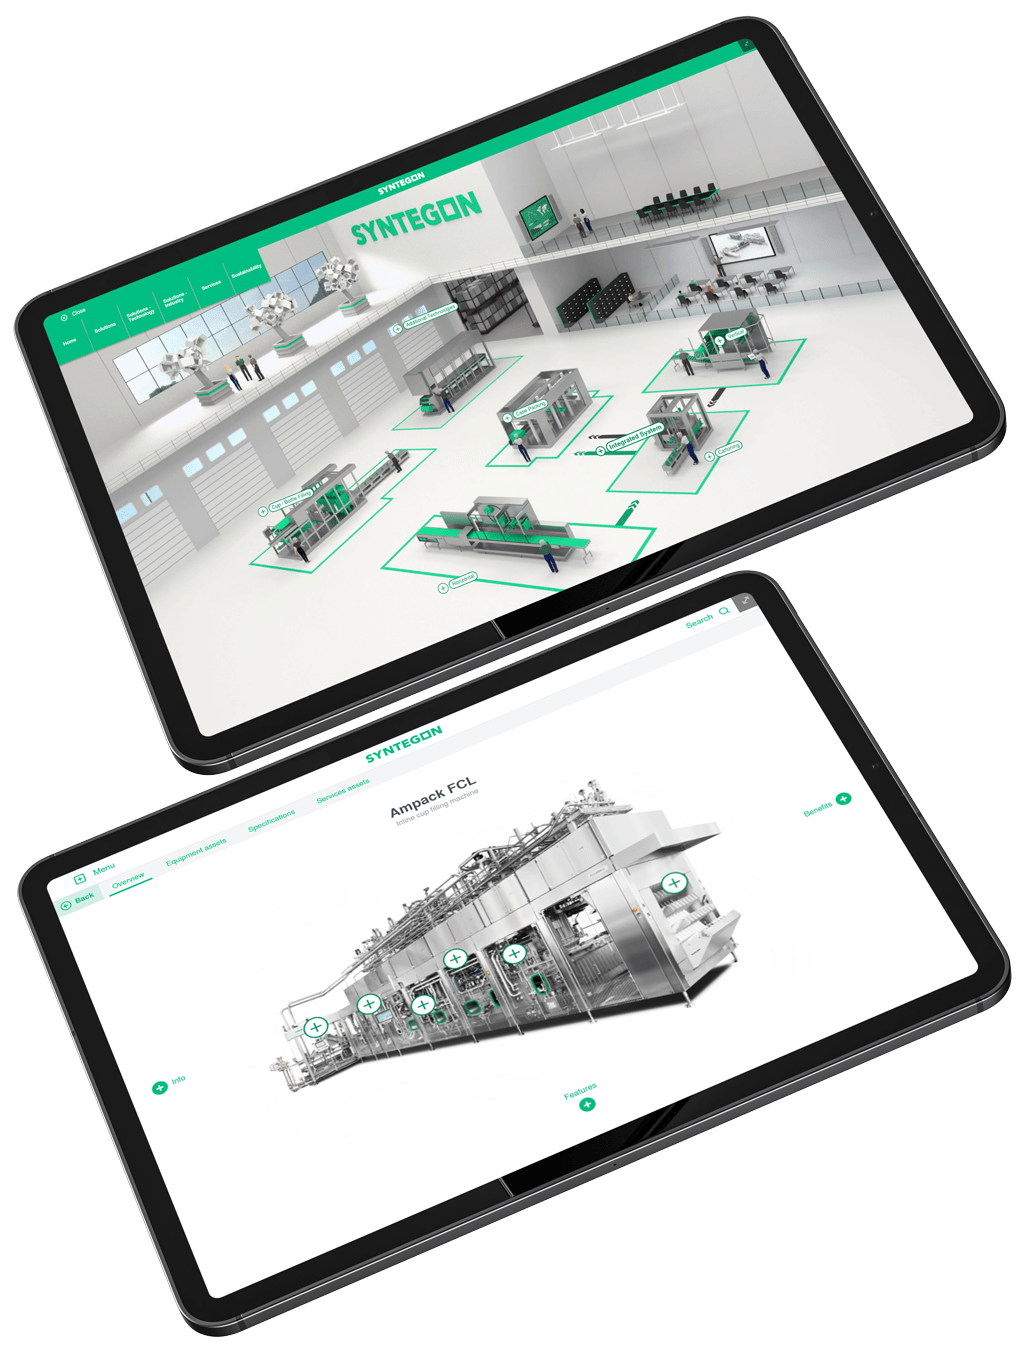 two black tablets displaying Syntegon interactive touchscreen digital presentation showing manufacturing office